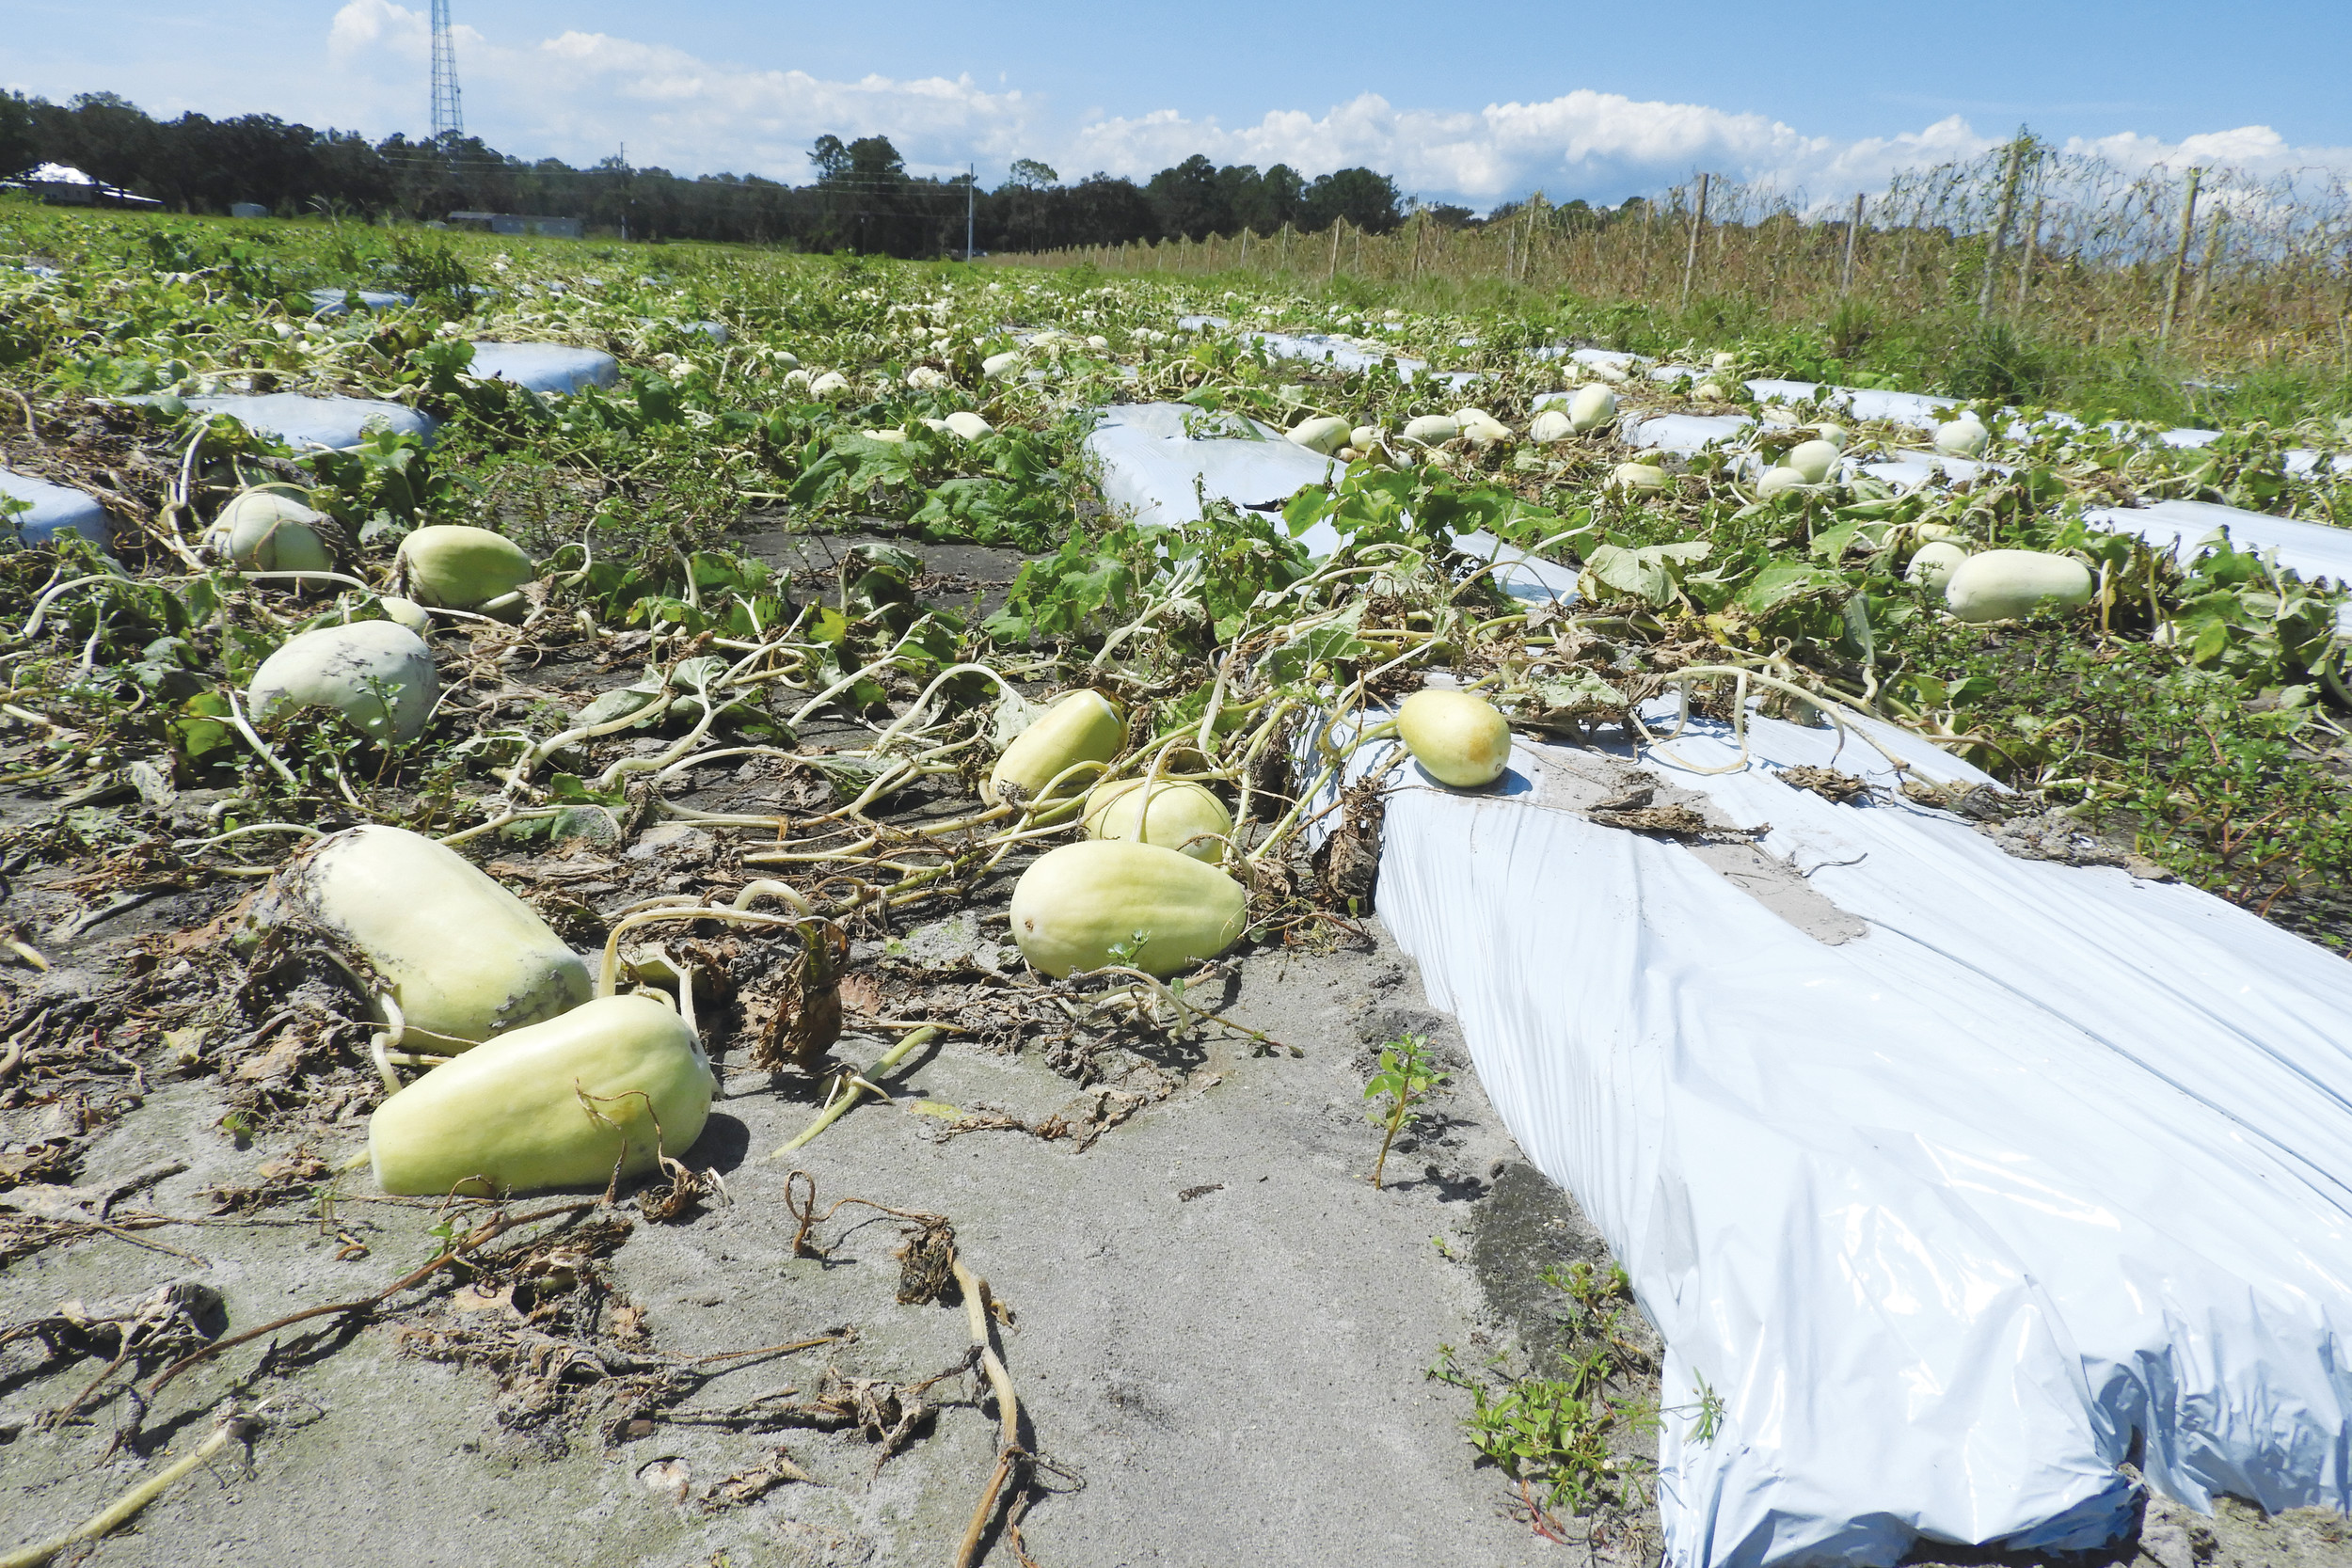 Winter Melon (pictured above), also known as ash gourd, is one of the crops included in the nearly 200 acres of Asian vegetables in St. Johns County that were damaged because of the high winds and inundating rainfall brought to the area by Hurricane Irma. According to UF/IFAS Extension of St. Johns County, one of the largest impacts for agriculture will be for cabbage, broccoli and brussels sprouts growers who will have to delay planting by one to two weeks during the peak fall growing window because of waterlogged soils. Small acreages of field corn and sweet potatoes were also impacted.